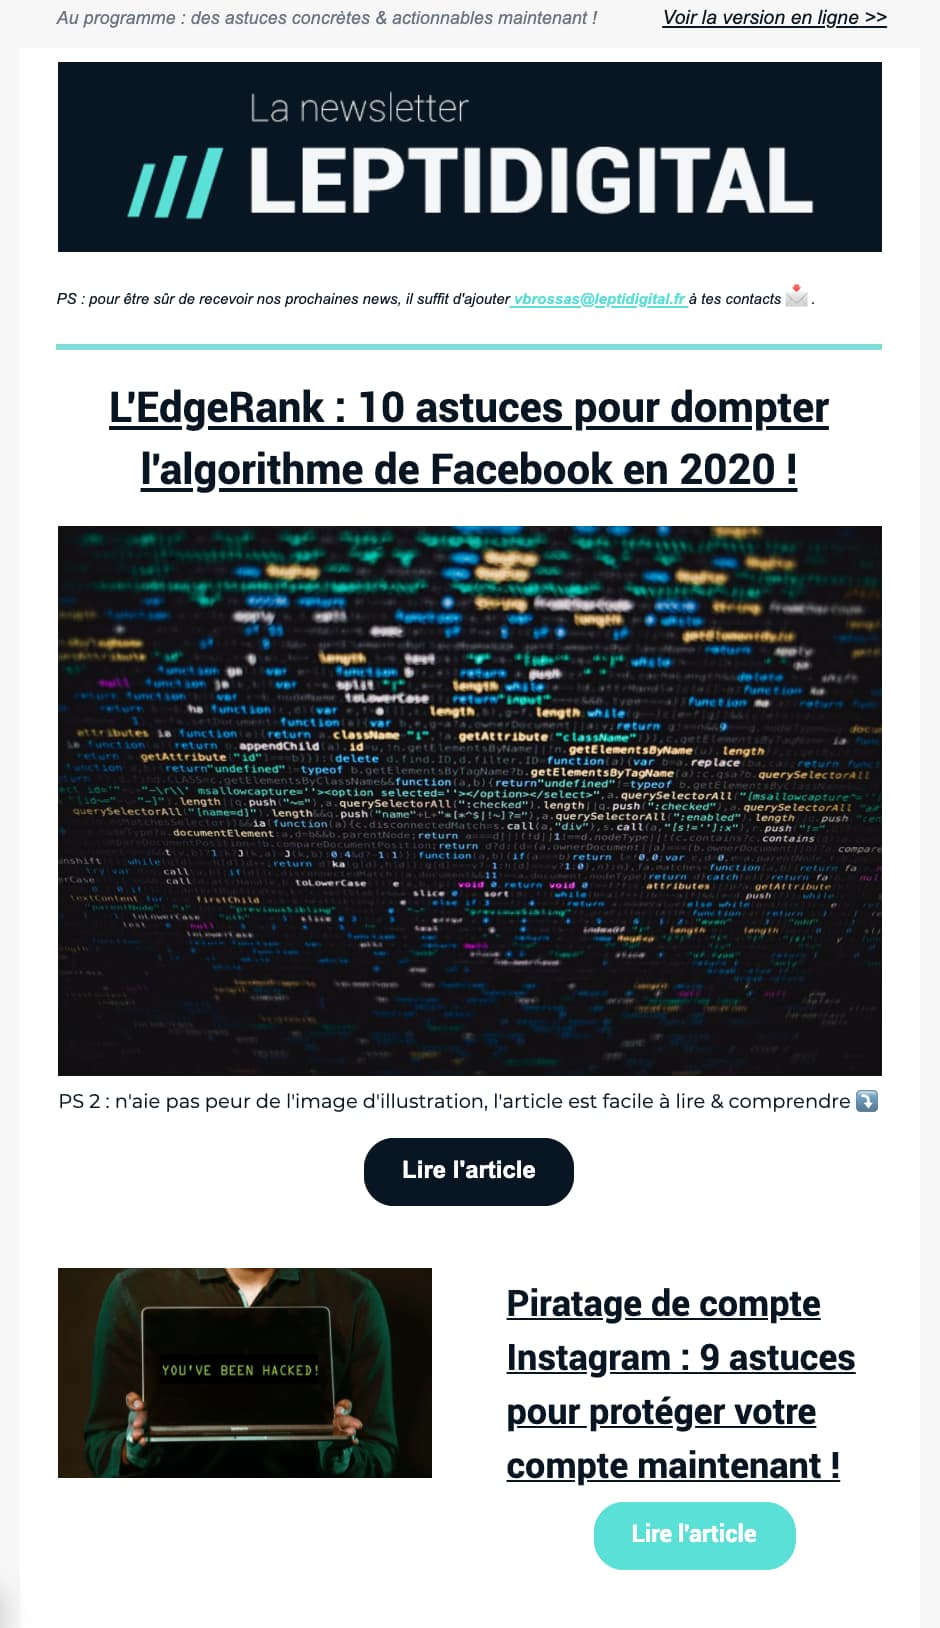 newsletter marketing digital webmarketing SEO social media growth hacking emailing et e-commerce leptidigital